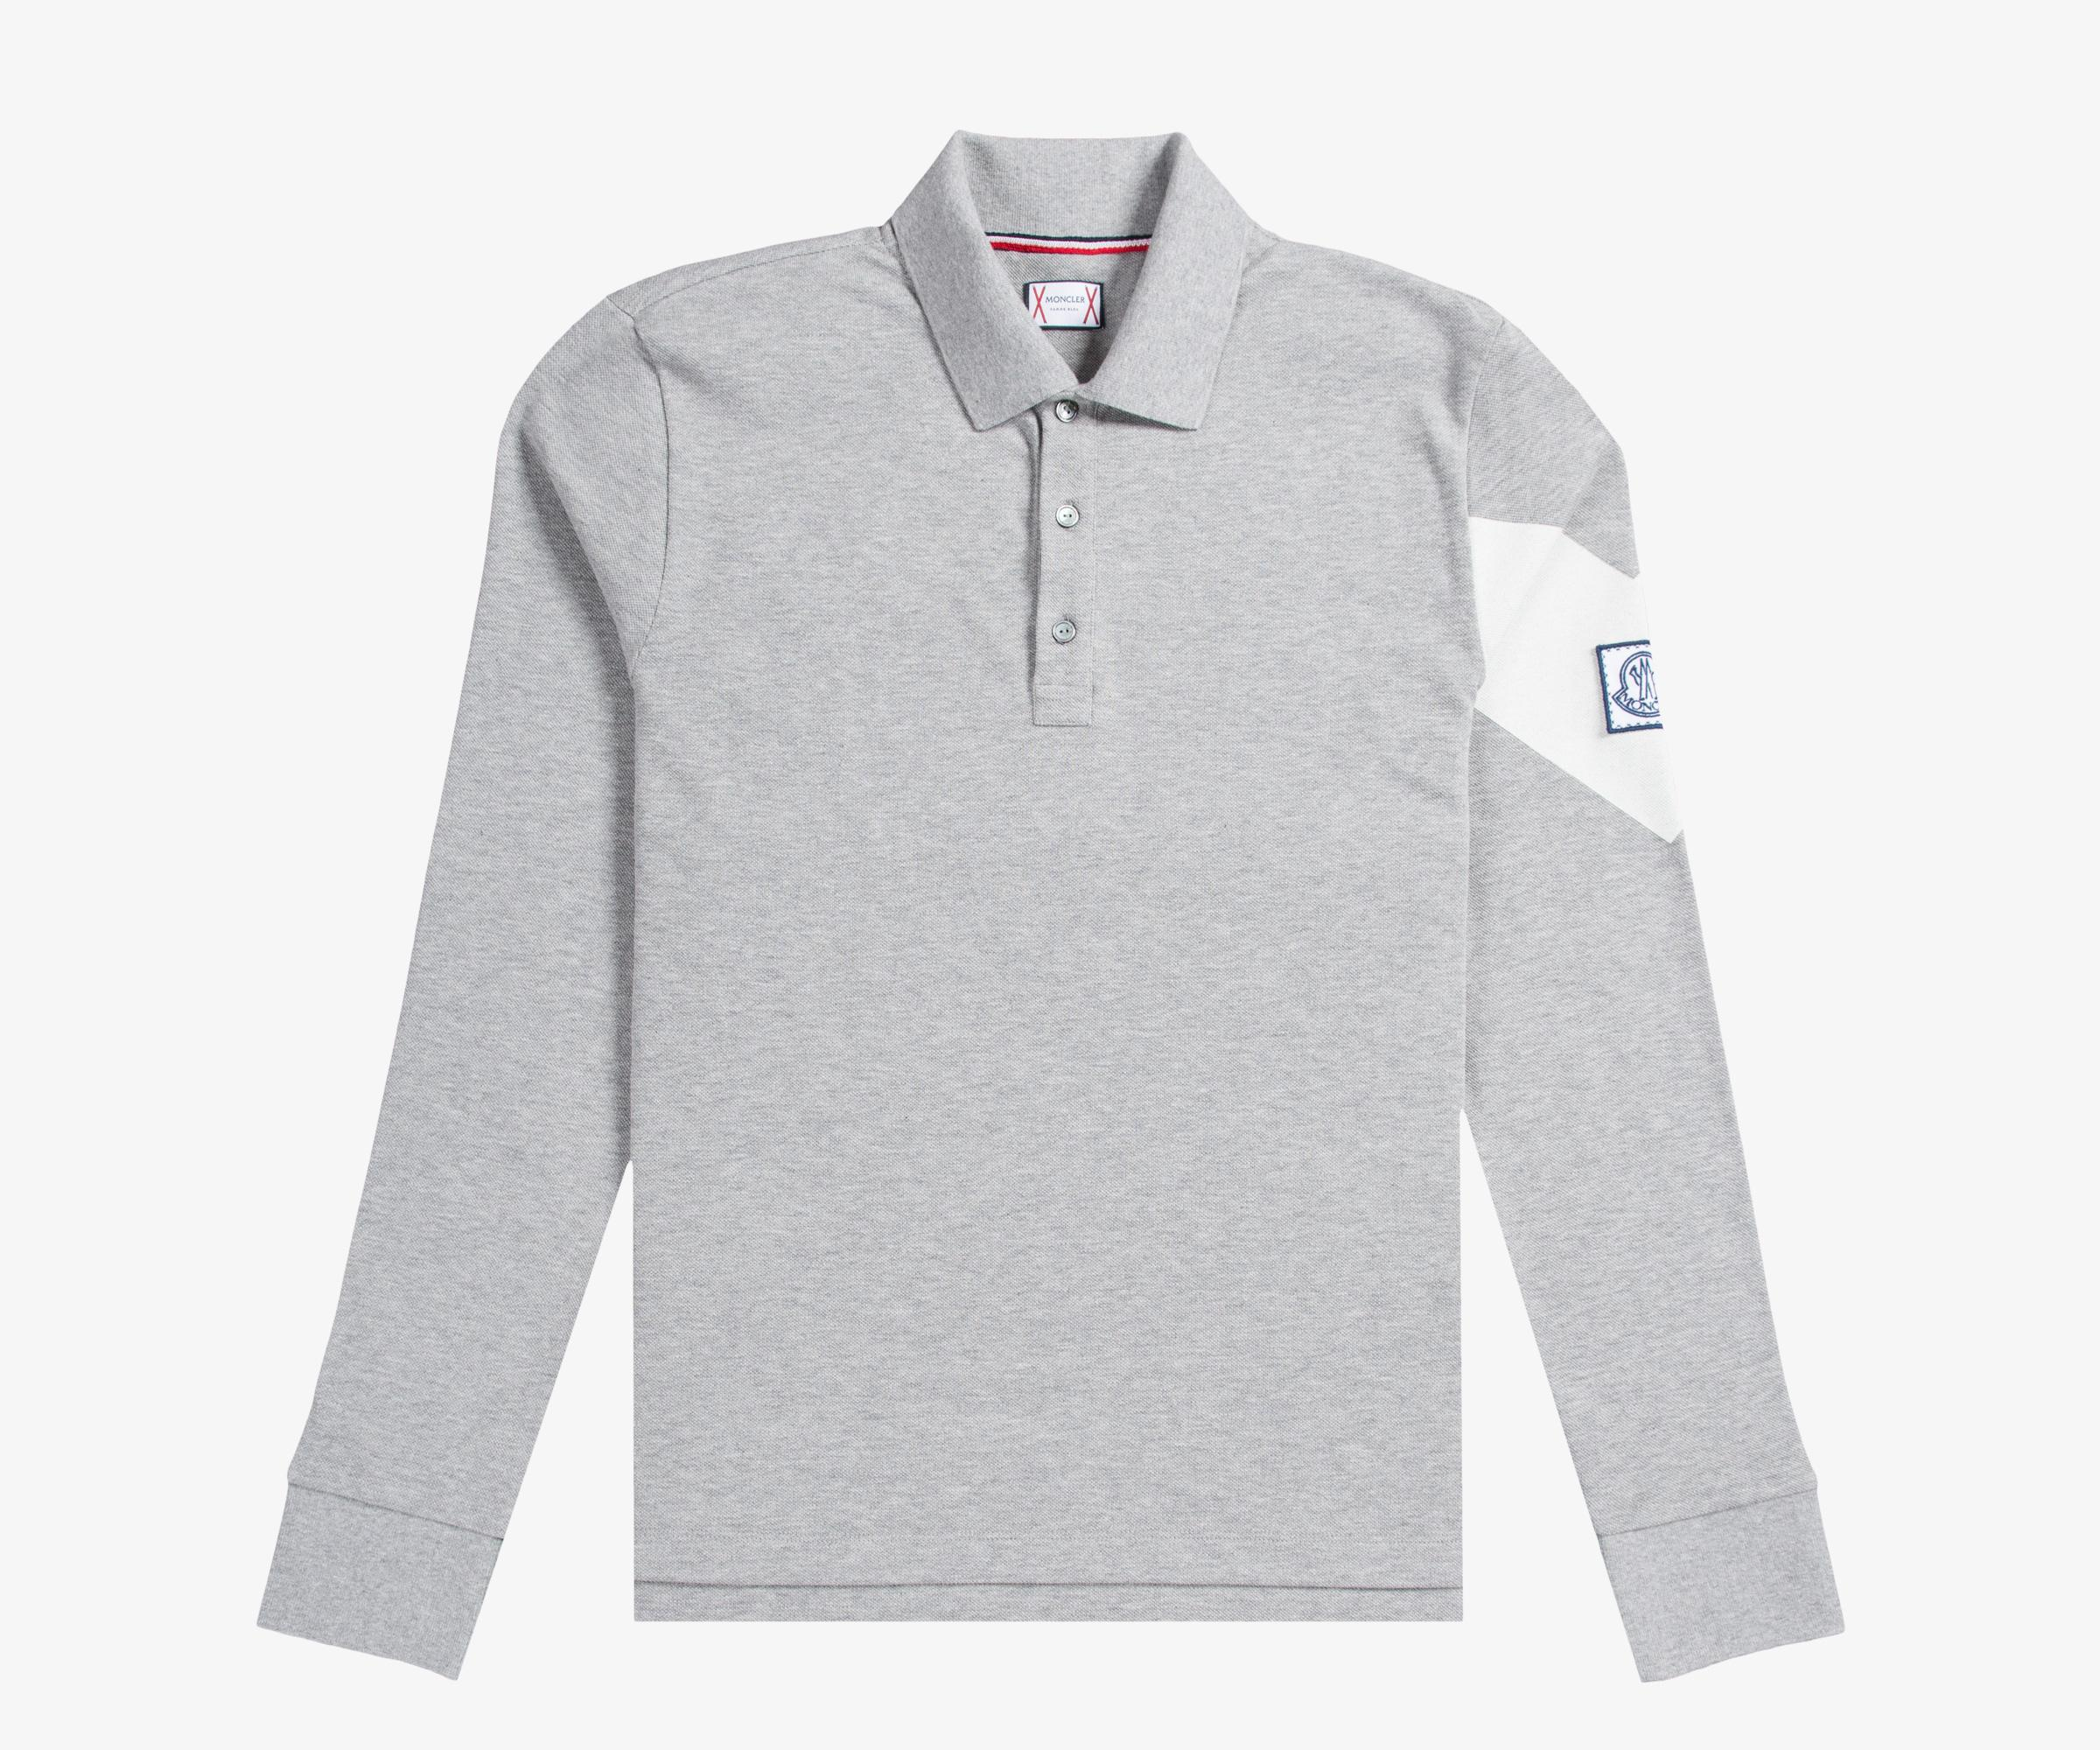 1c082529f122 Lyst - Moncler Gamme Bleu Long Sleeved Pique Polo With Arm Detail ...